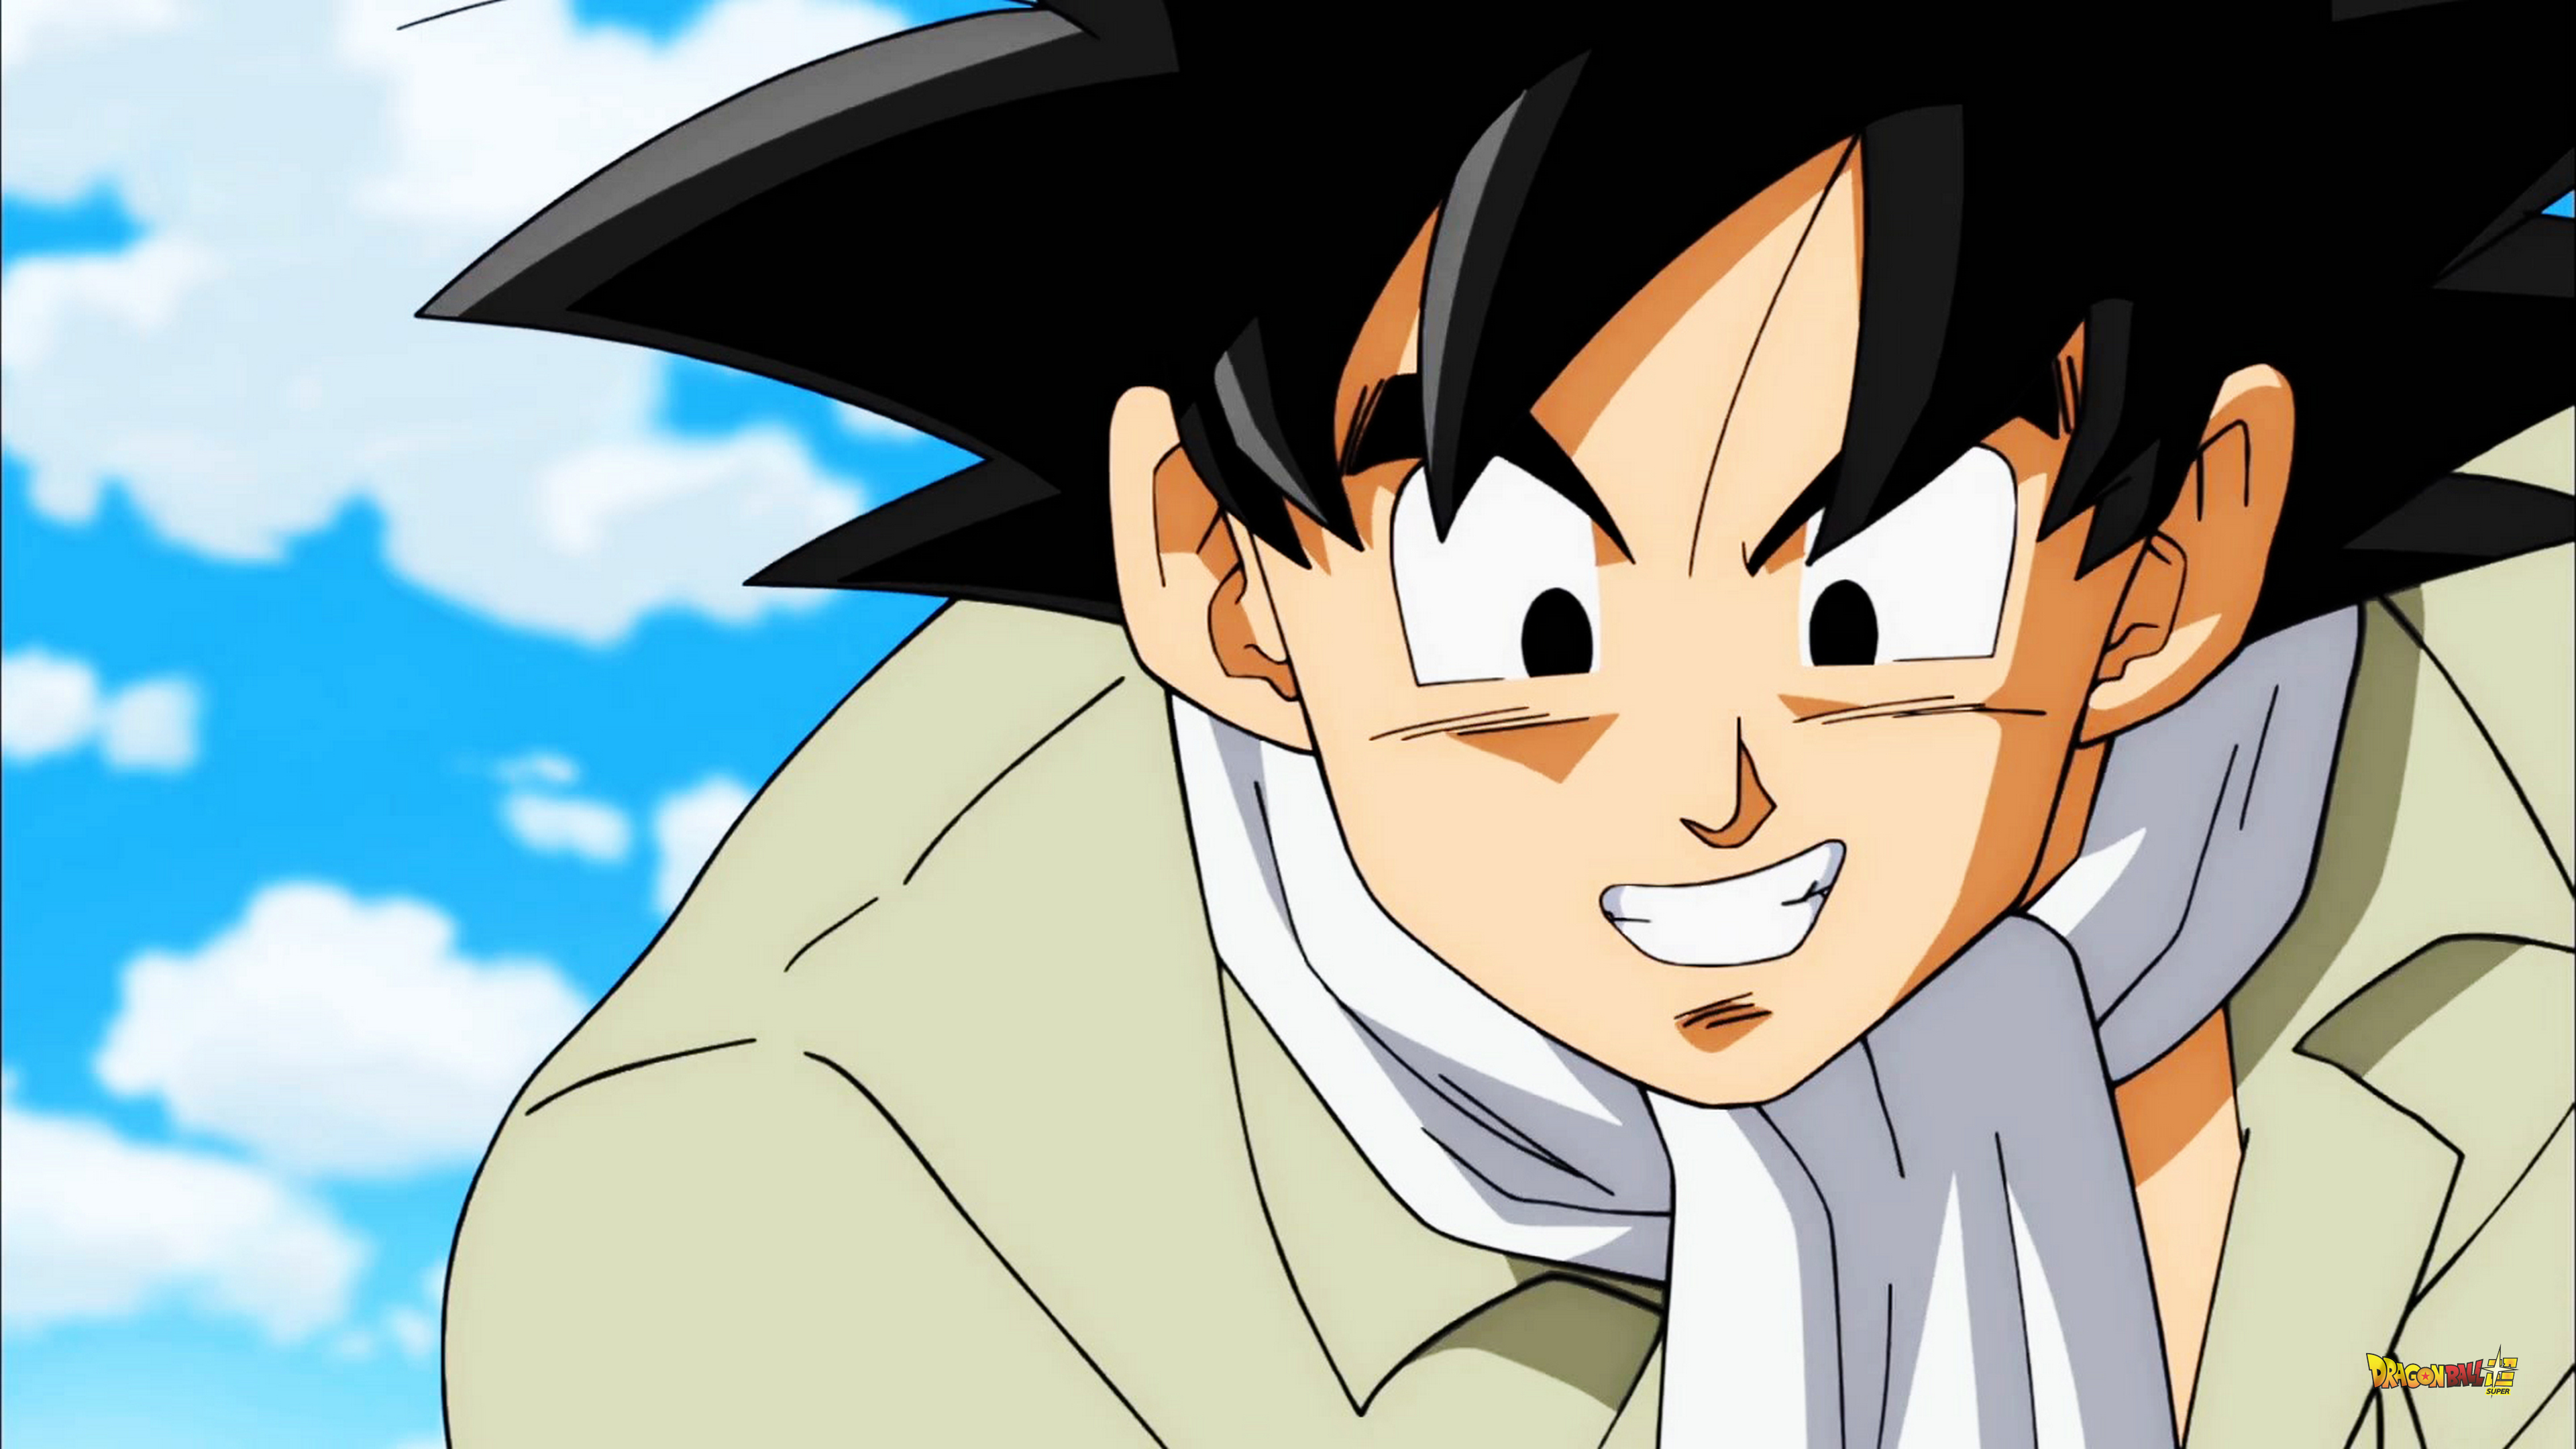 Dragon Ball Super Season 1 Episode 1 S01E01 4k uHD Wallpapers 03 Goku works in his radish field, but wants to go training and fighting.